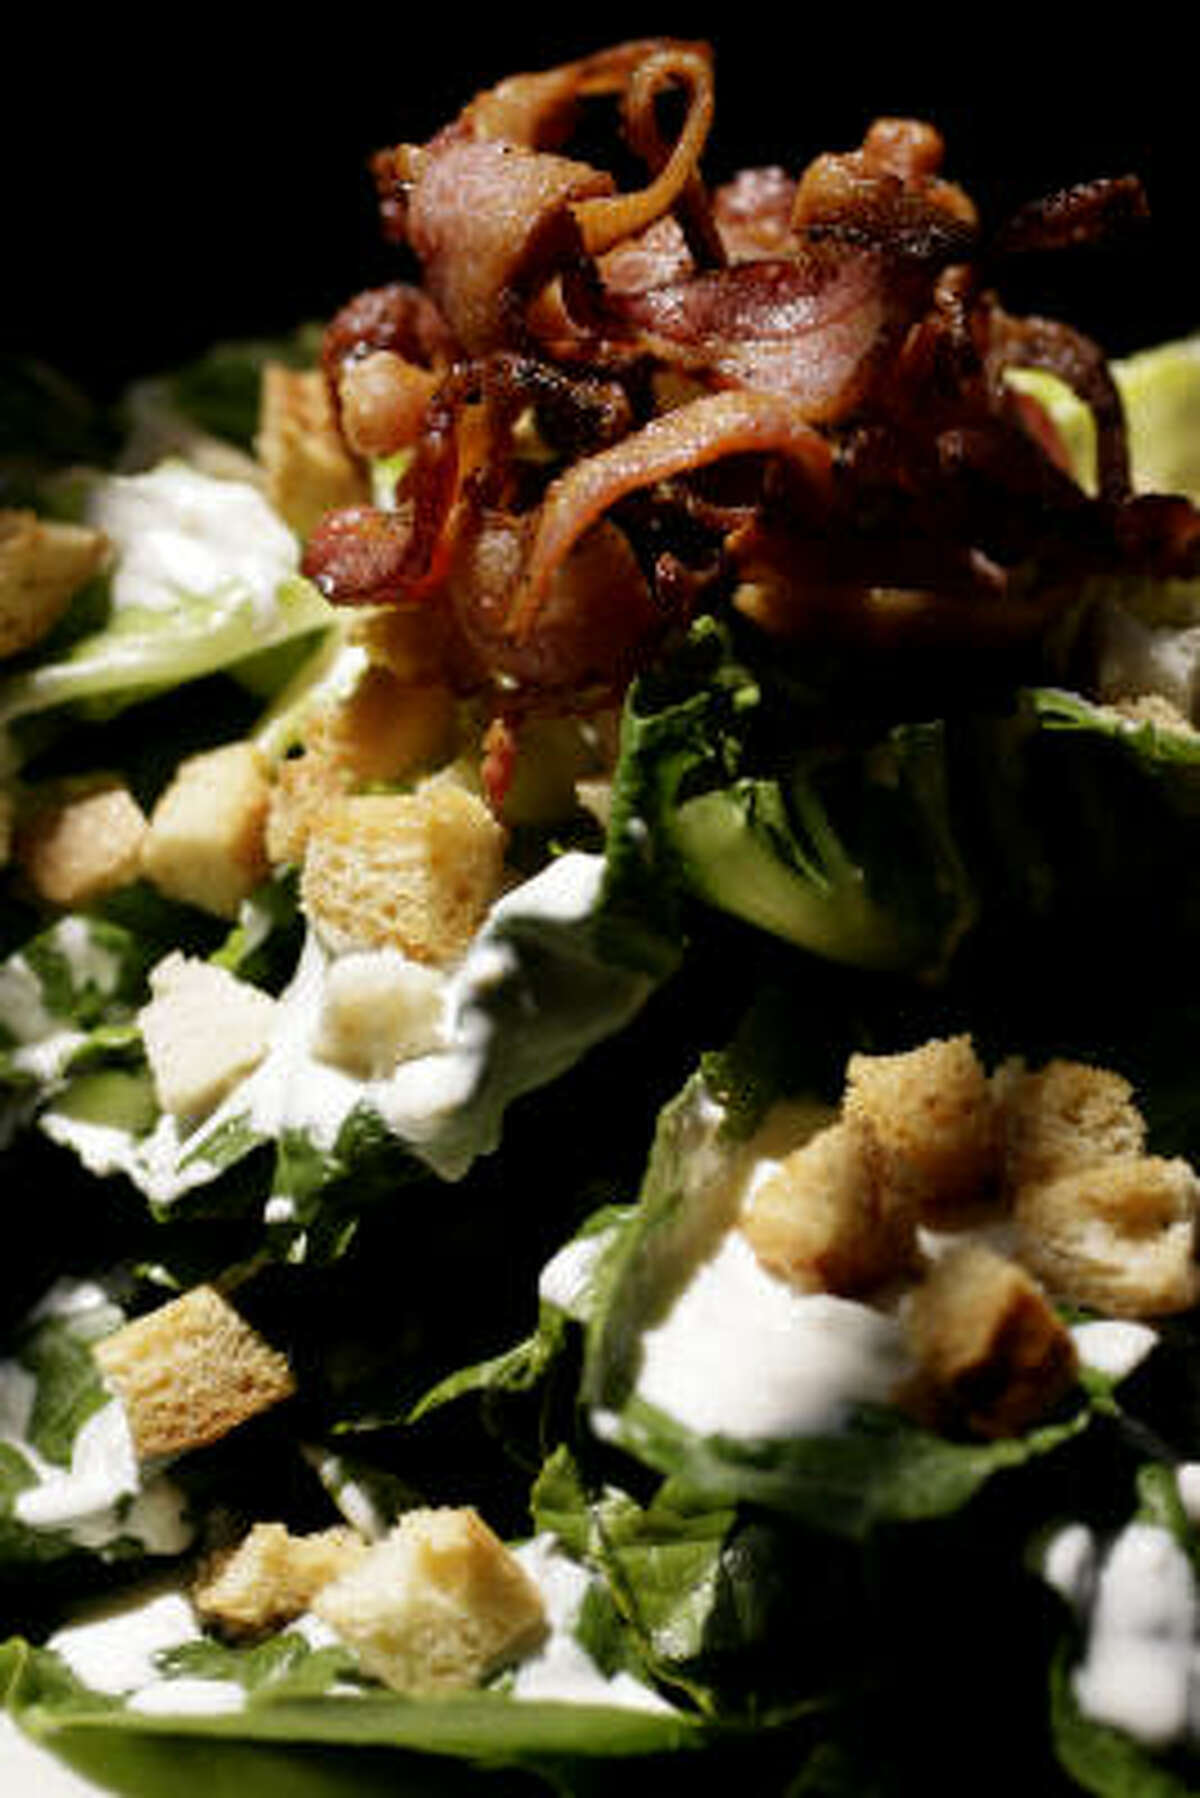 Hearts-of-romaine salad for two.